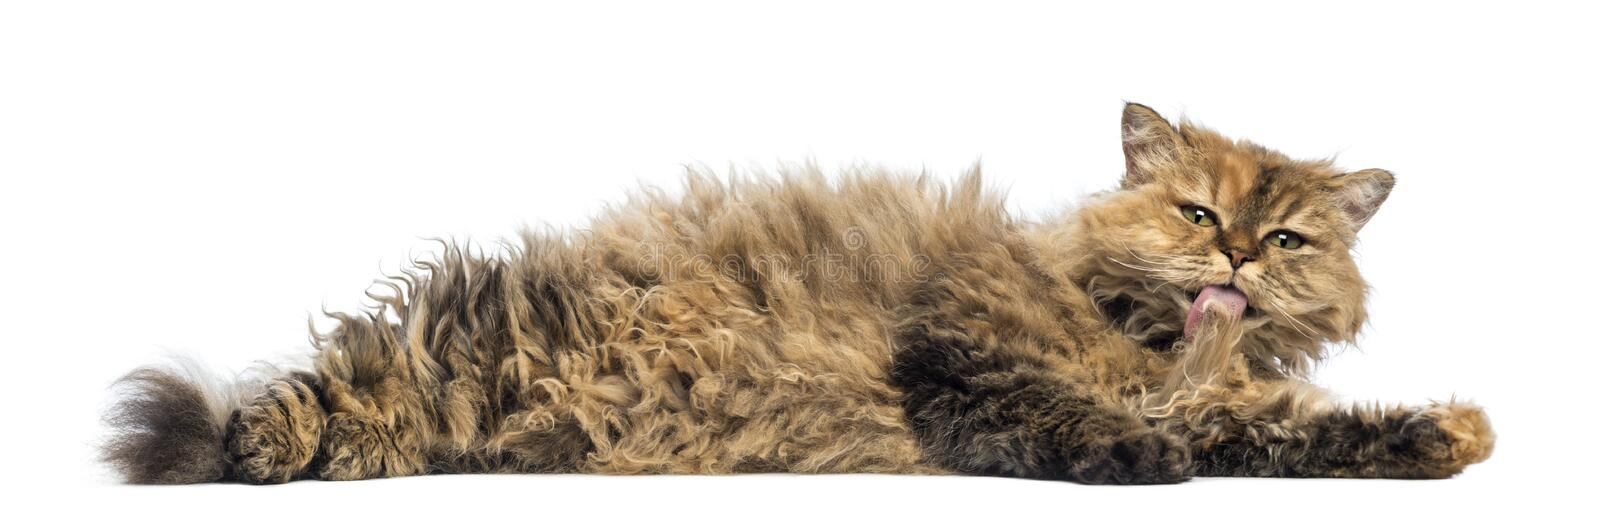 Download Selkirk Rex, 5 Months Old, Lying And Cleaning Itself Stock Photo - Image: 29013112